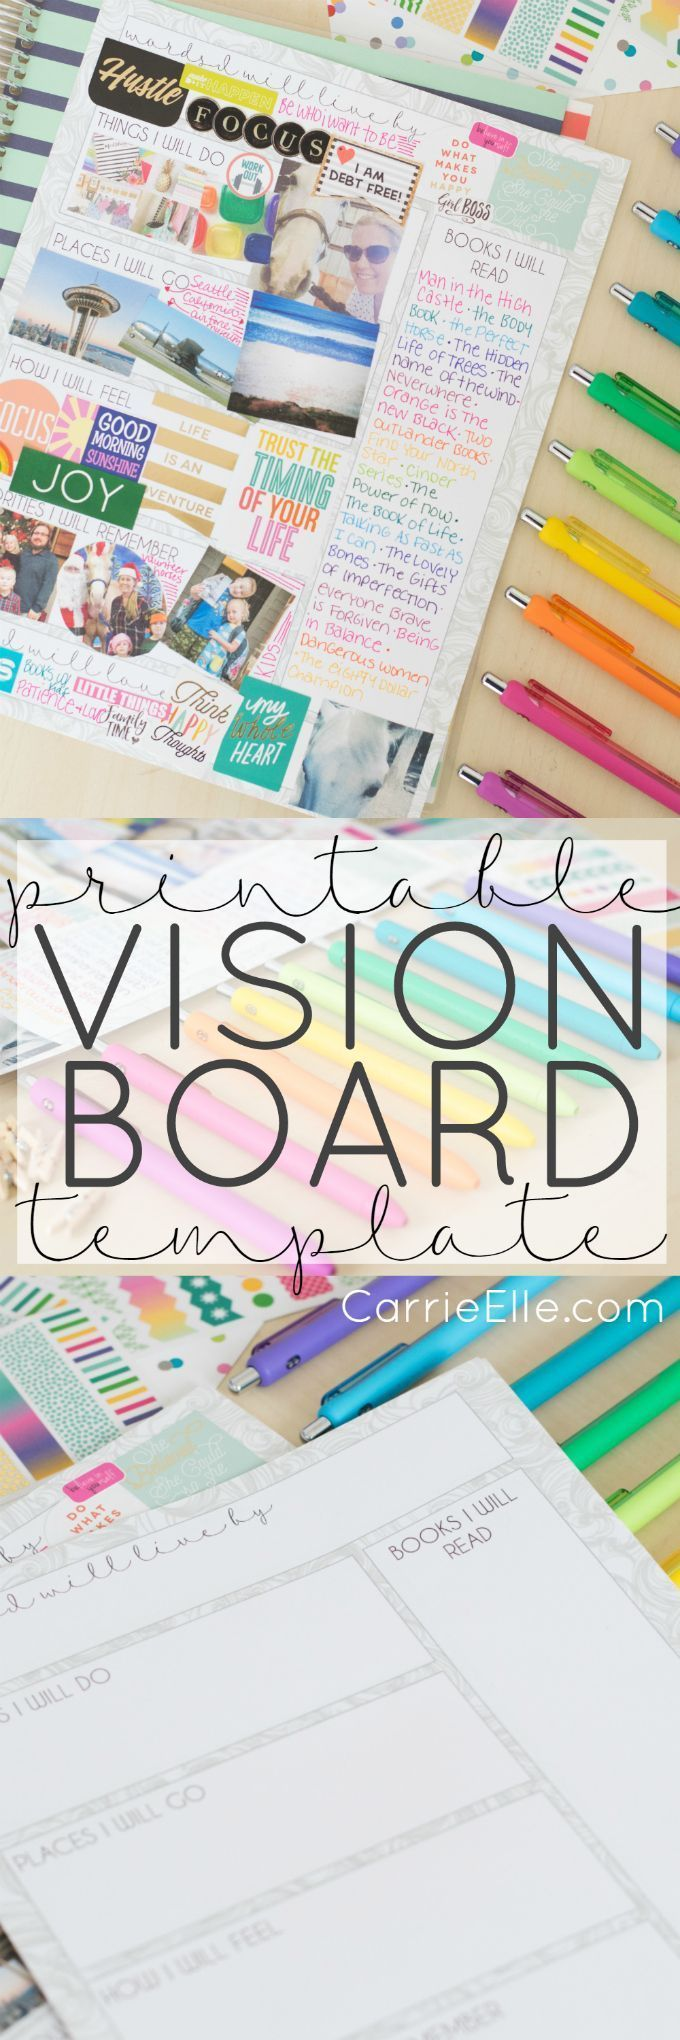 Printable Vision Board Template - print out this fun template and create a vision board you'll love to look at! #StreamTeam